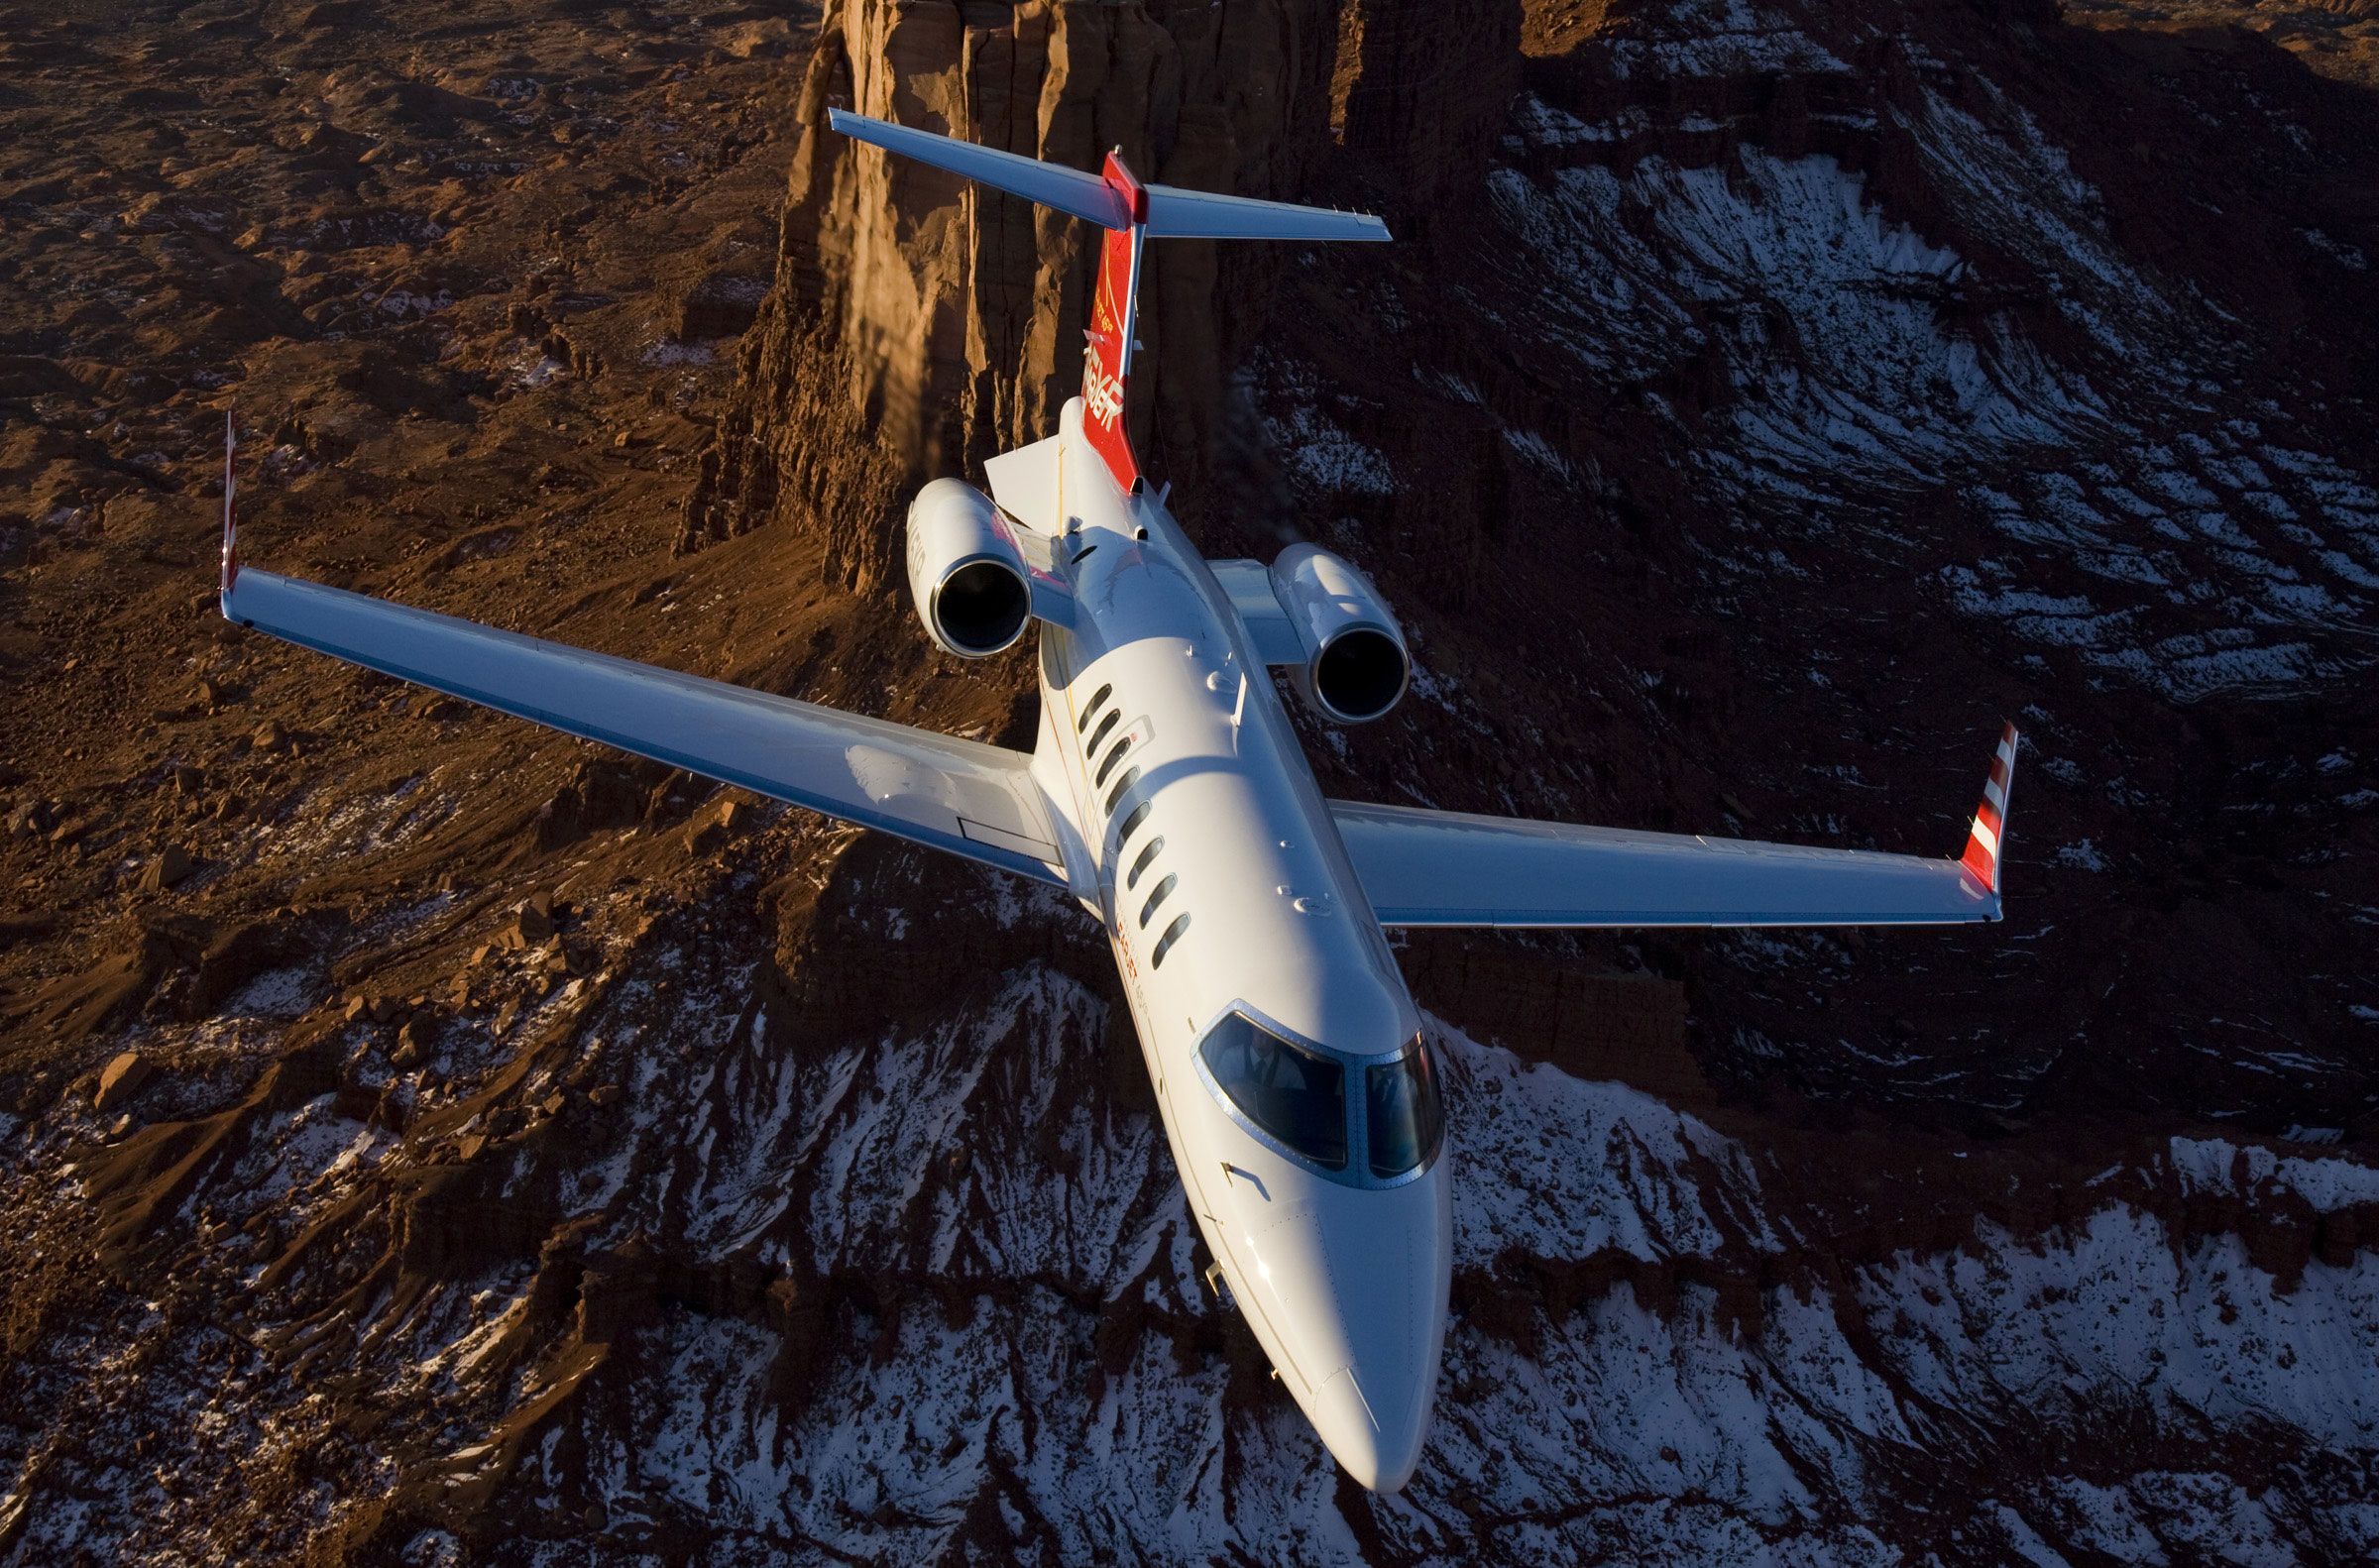 Bombardier-learjet-45-hire-private-plane